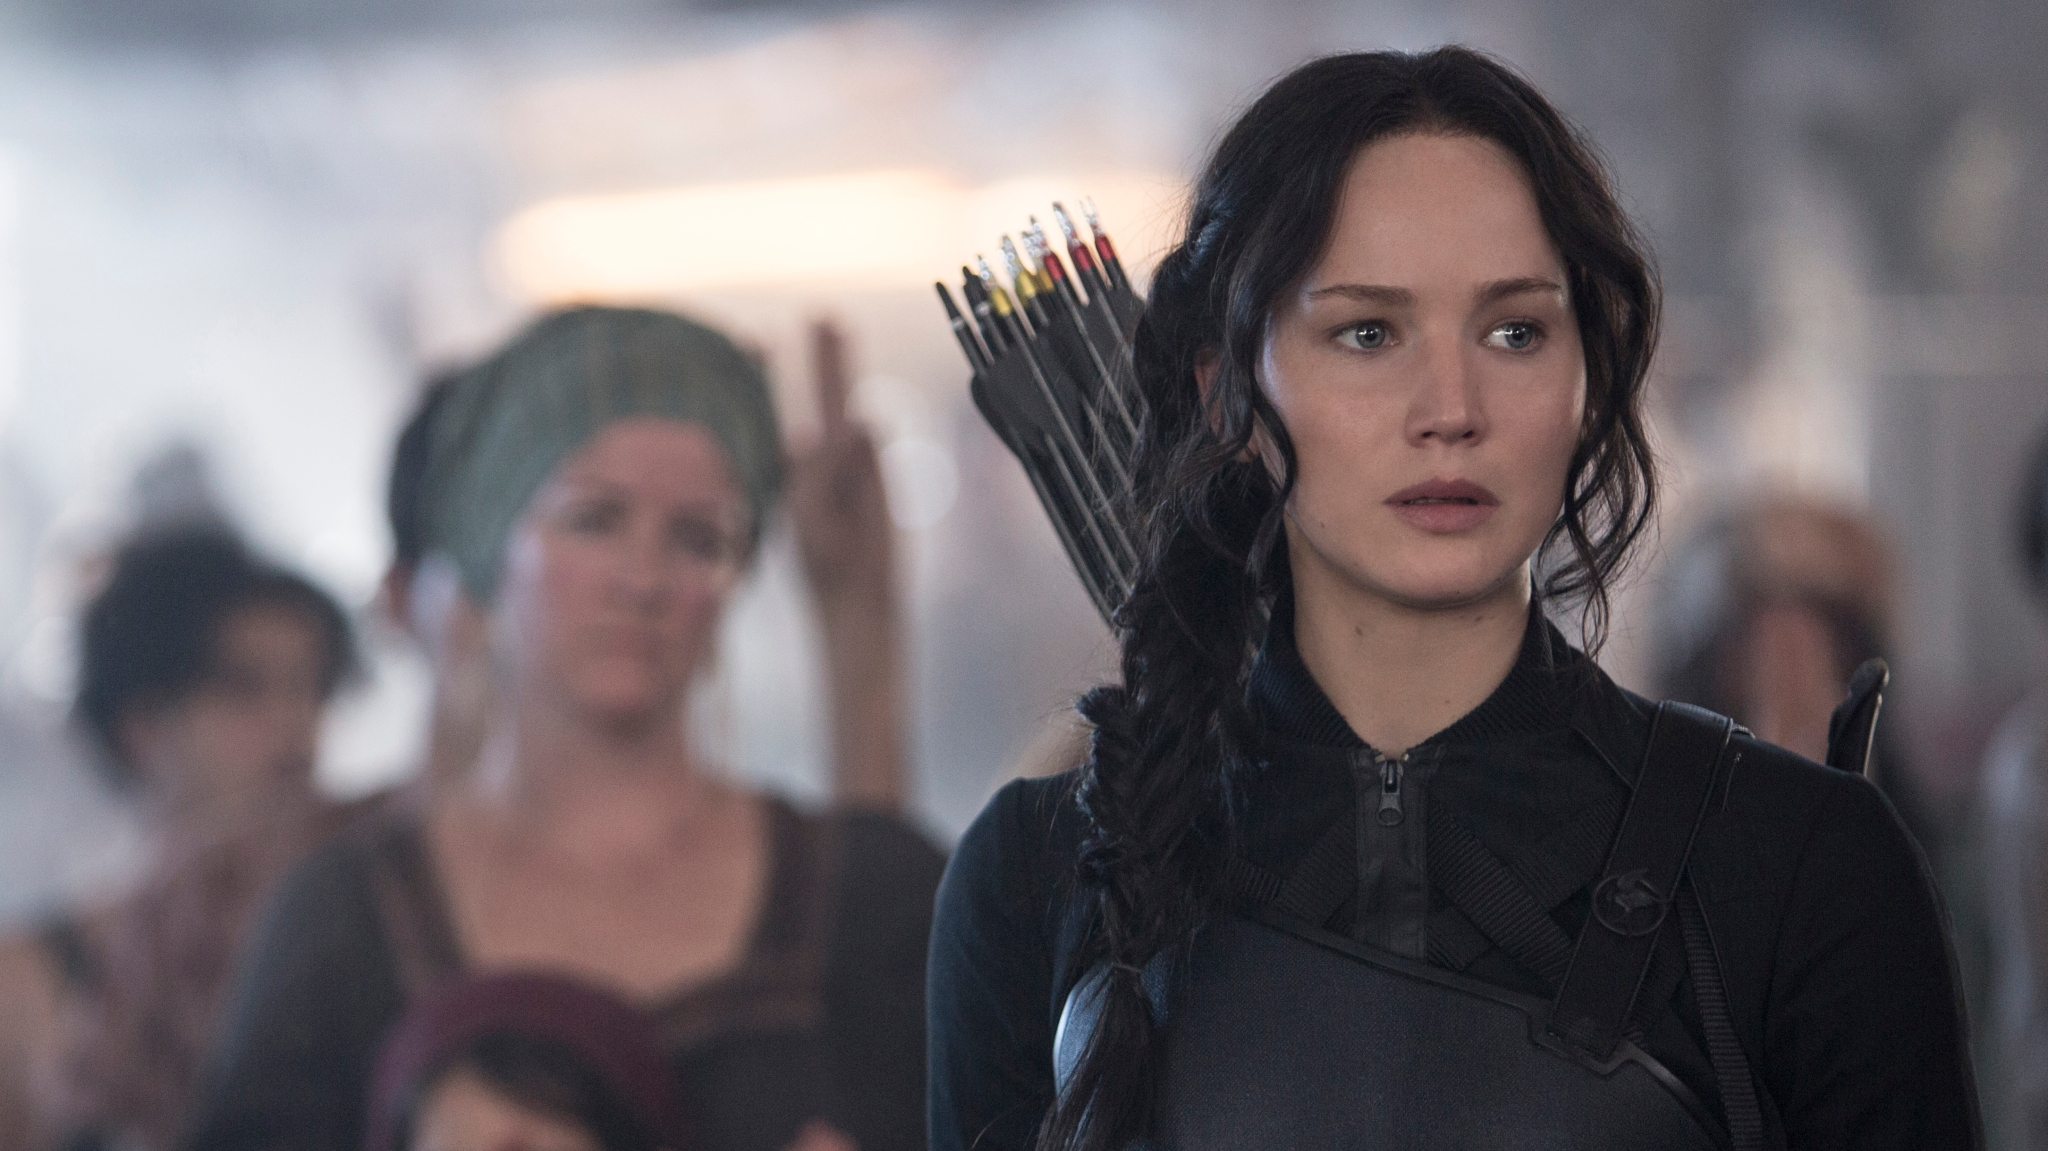 The Revolution Will Be … Prolonged: The Enjoyable, Frustrating Third 'Hunger Games' Installment, 'Mockingjay — Part 1'